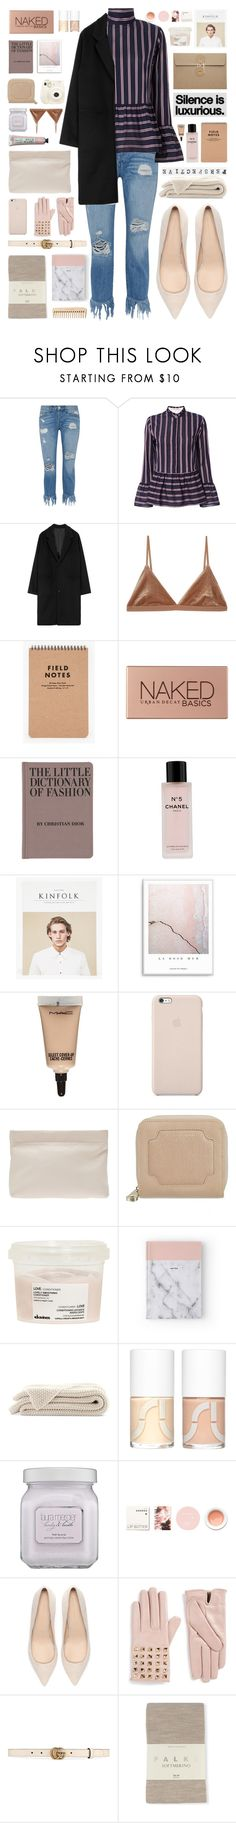 """Untitled #301"" by vendre-du-reve ❤ liked on Polyvore featuring 3x1, Le Sarte Pettegole, Base Range, Urban Decay, Jayson Home, Chanel, MAC Cosmetics, Black Apple, Acne Studios and Aspinal of London"